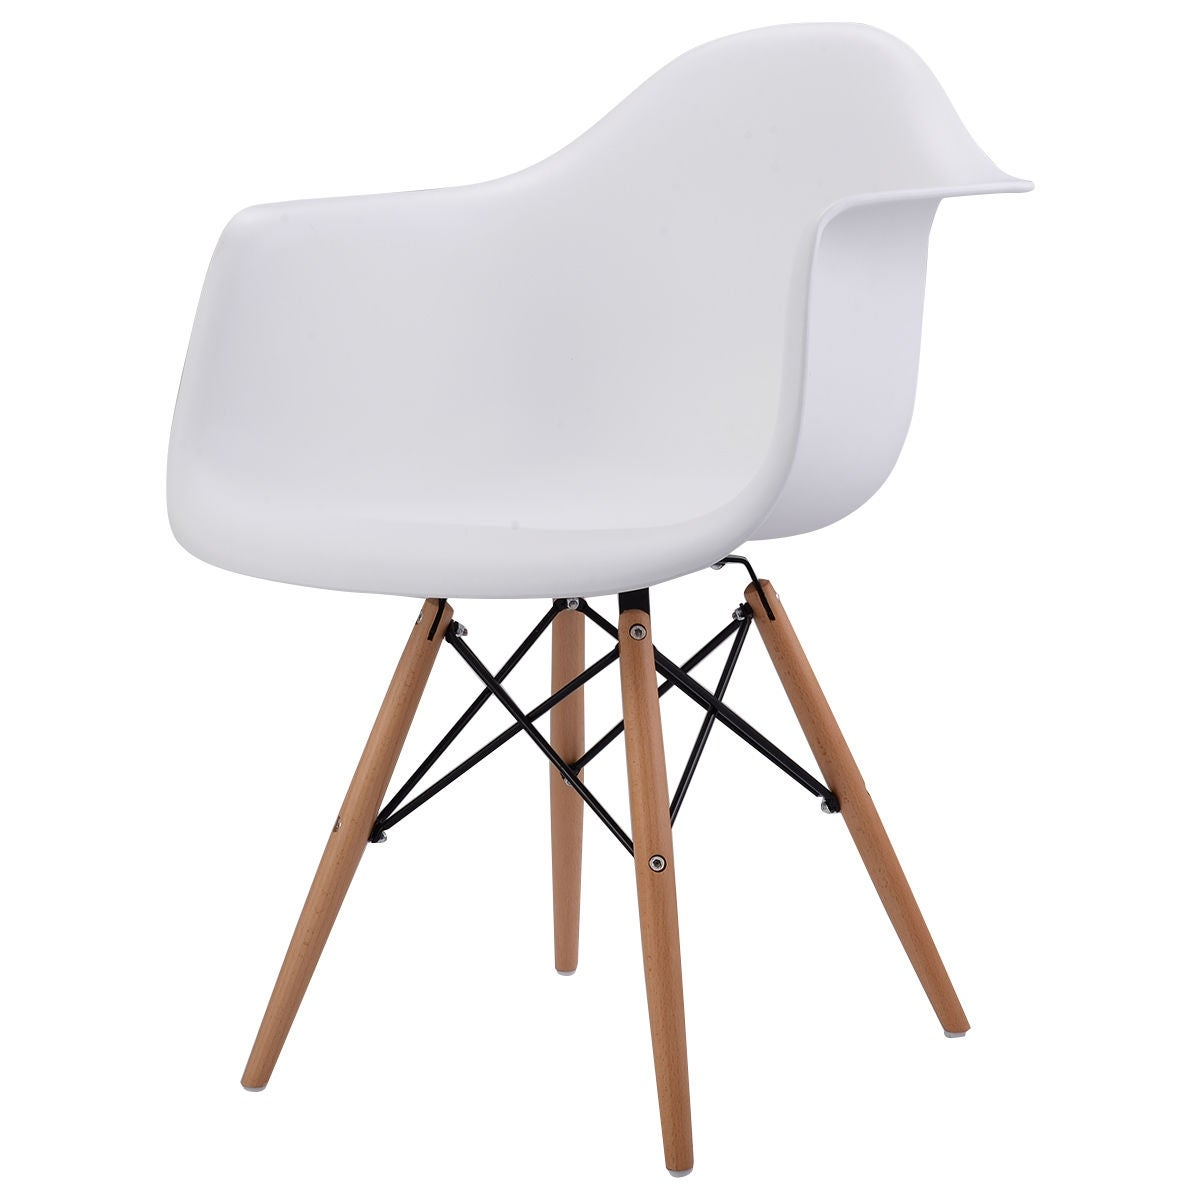 Costway White Modern Molded Plastic Dining Arm Side Chair Wood Legs Free Shipping Today 17126261